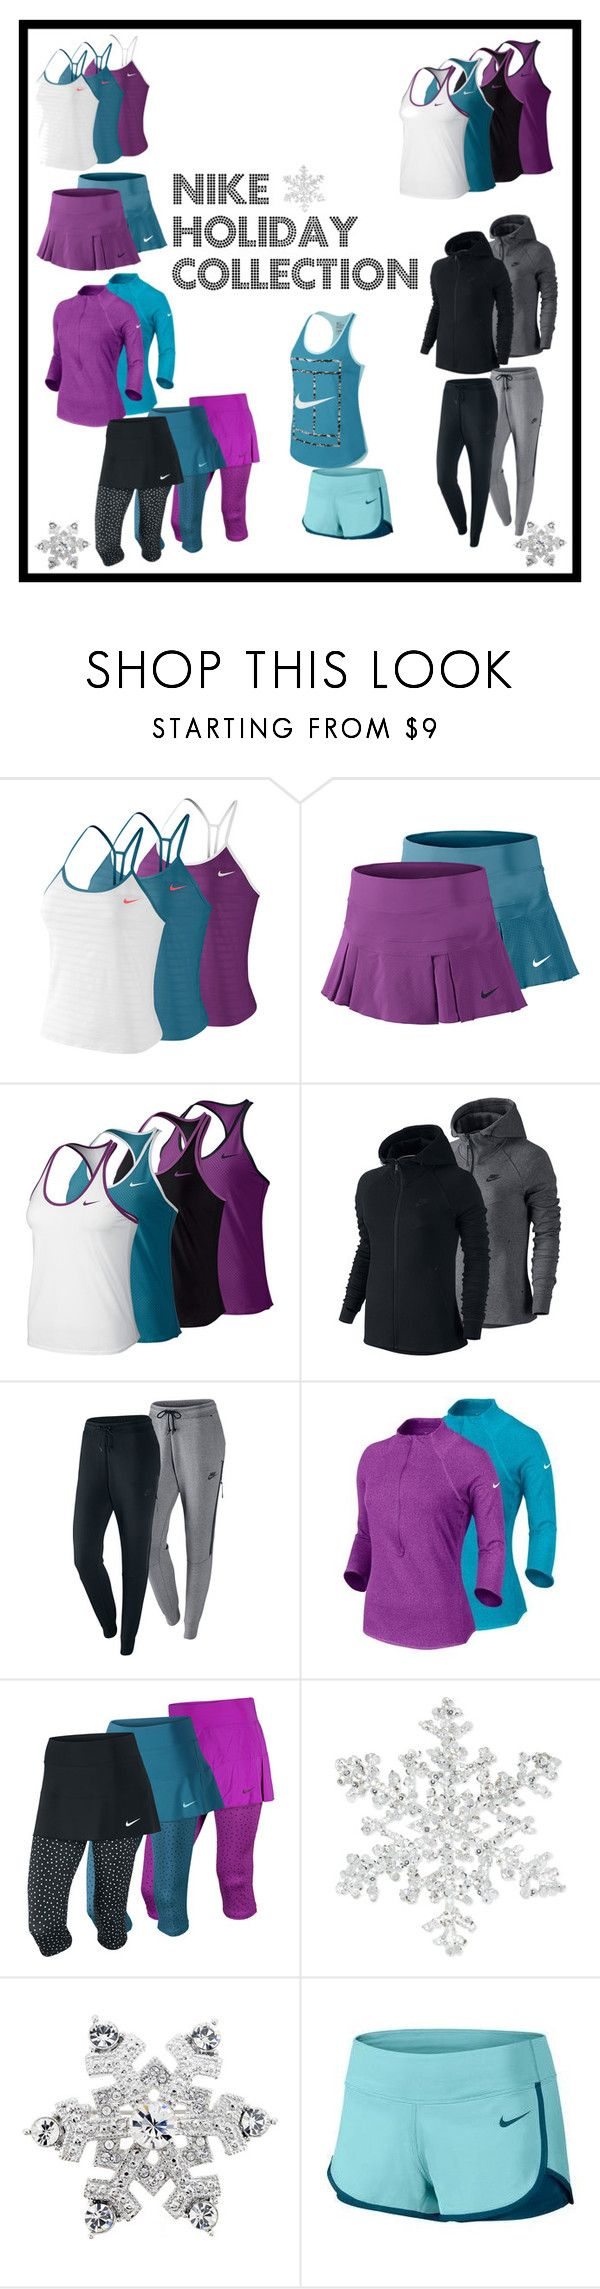 Nike Holiday Collection Now at Tennis Express! by tennisexpress on Polyvore featuring NIKE